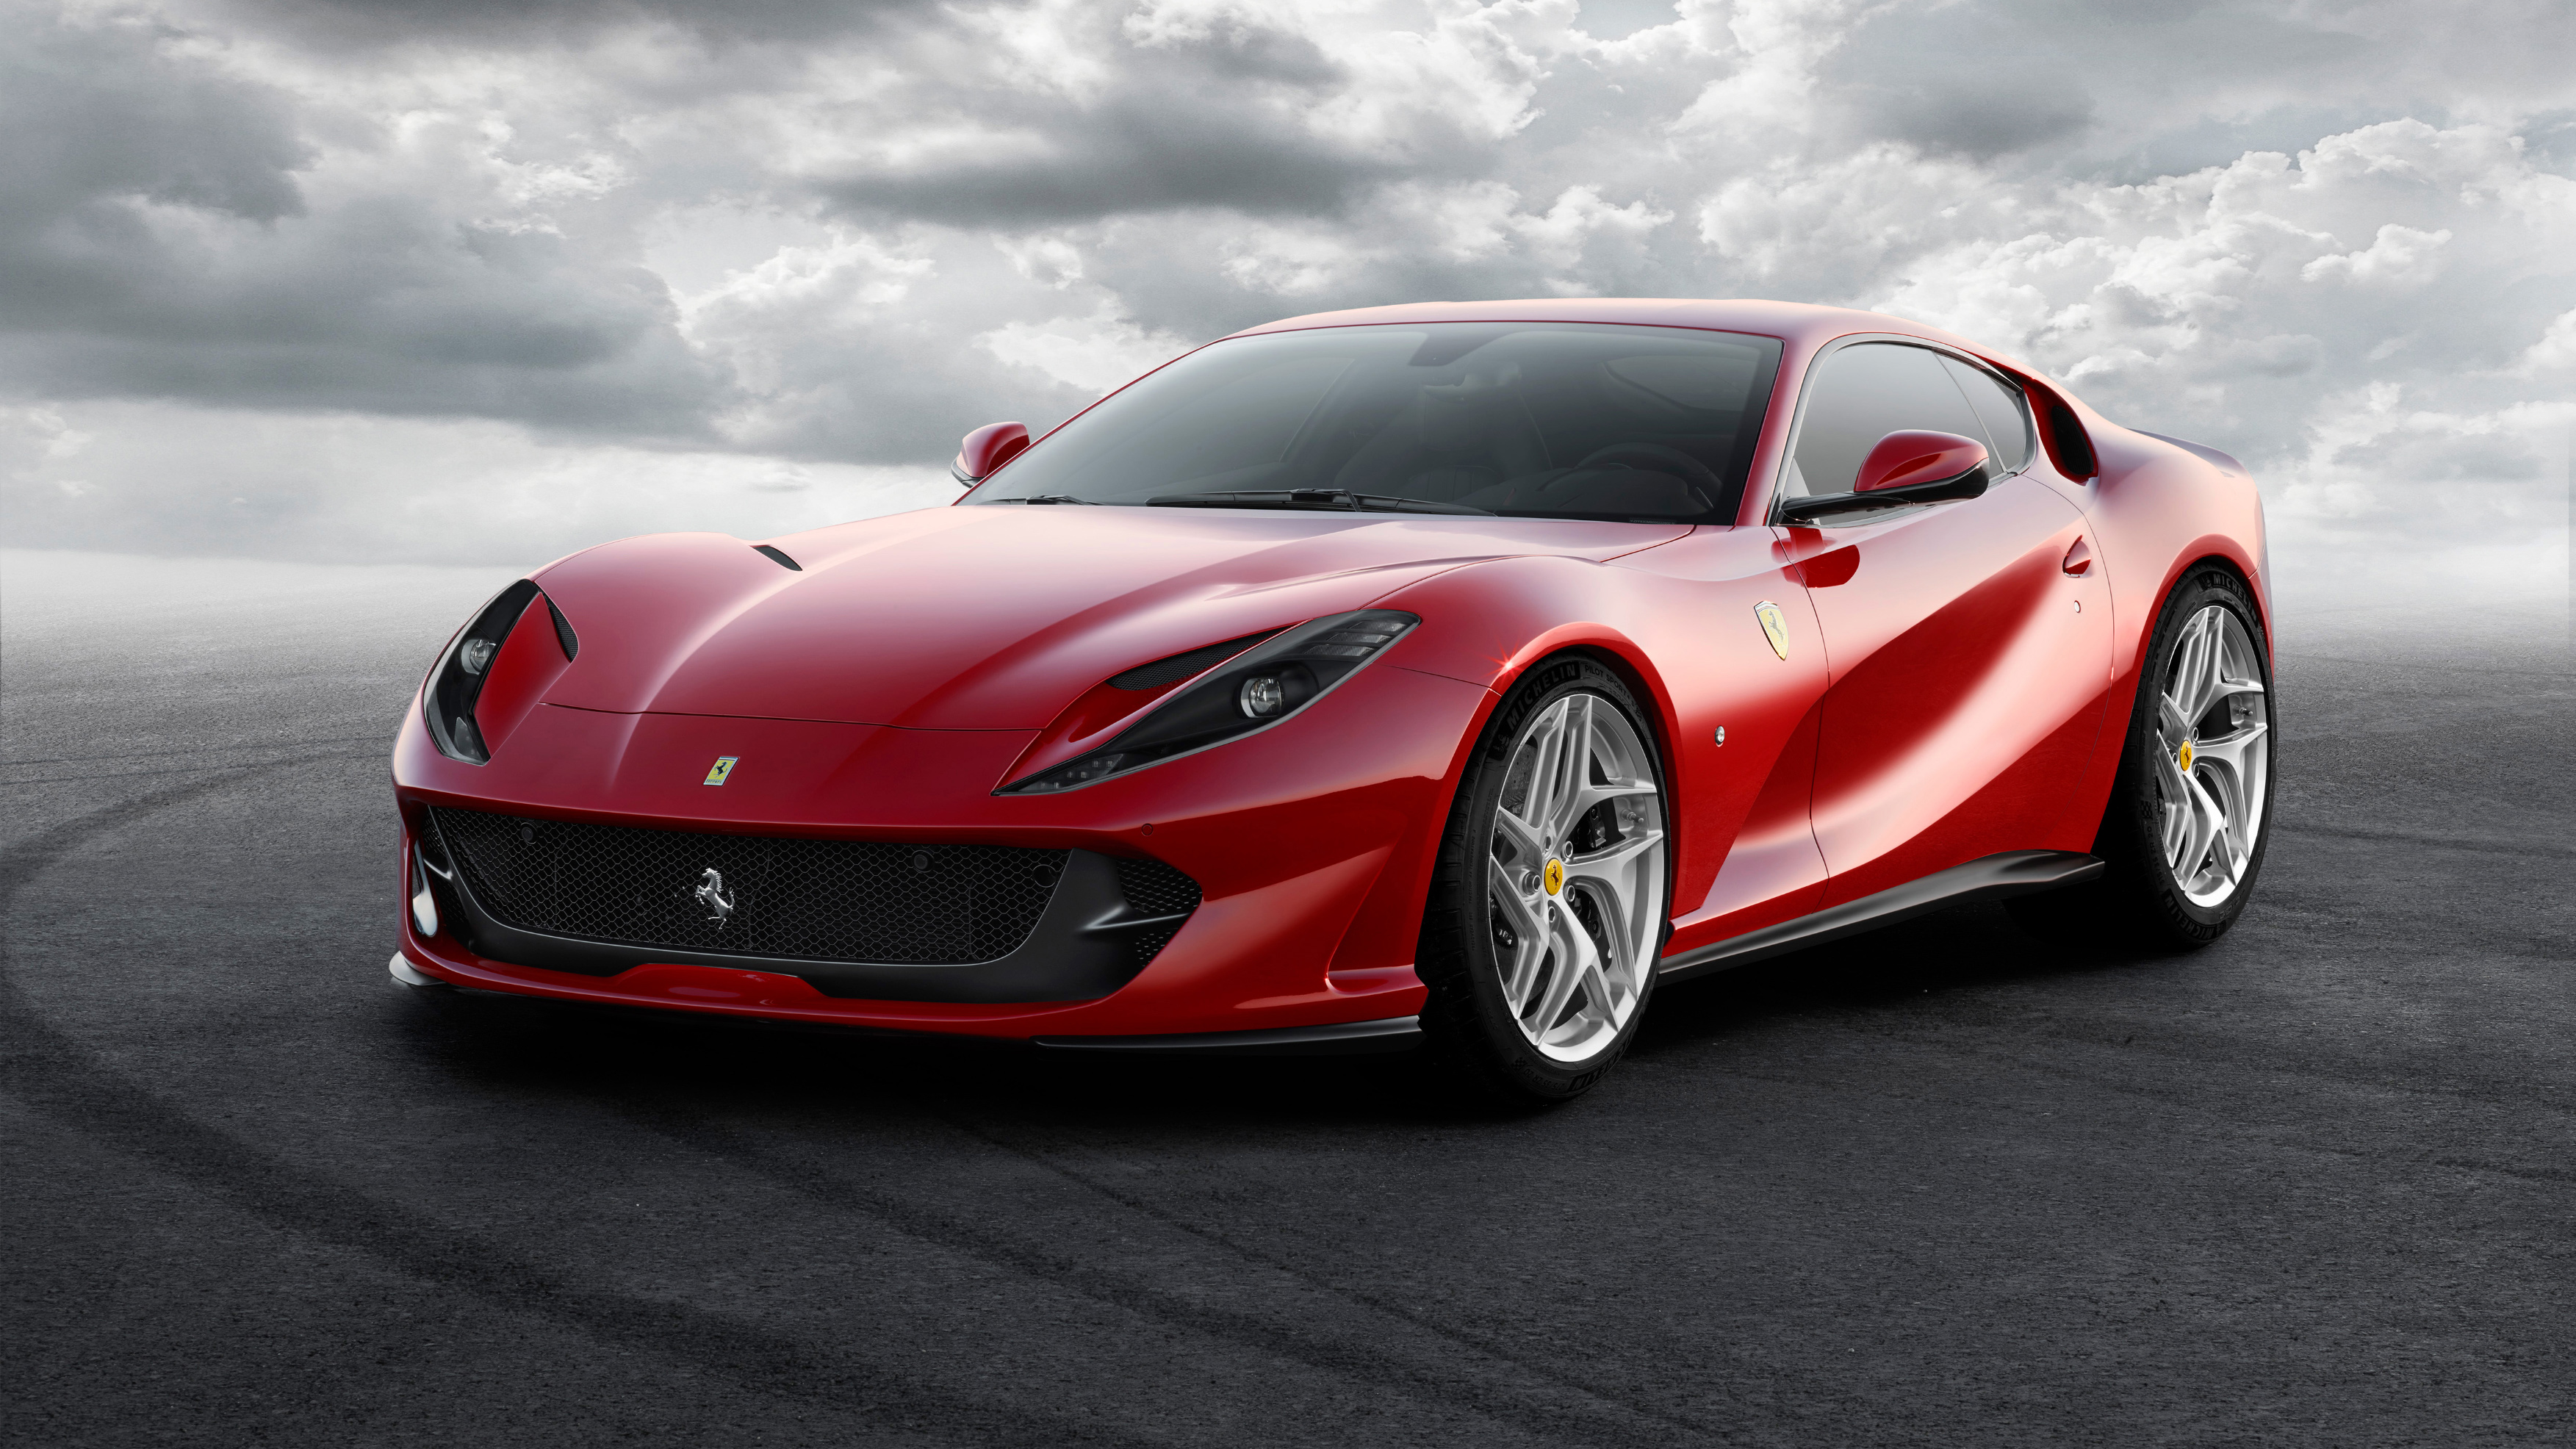 2017 Ferrari 812 Superfast Wallpaper Hd Car Wallpapers Id 7563